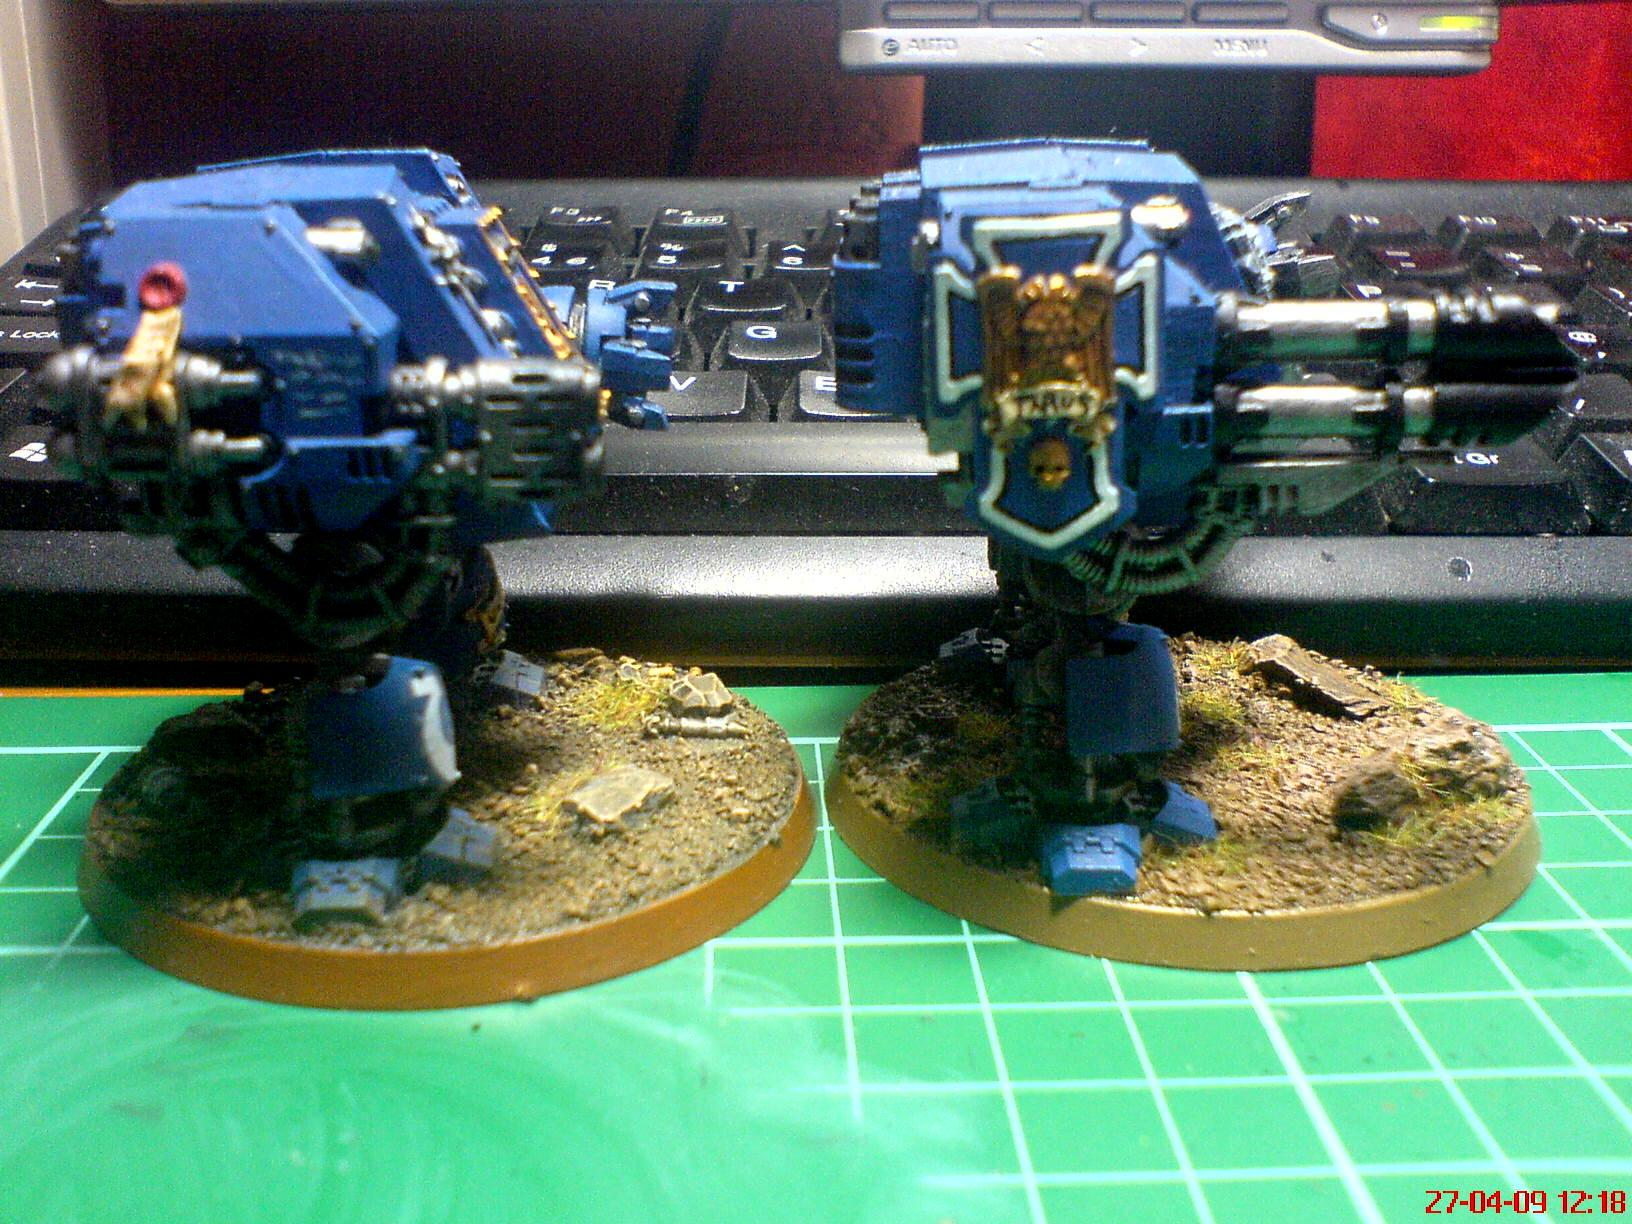 Dreadnought, Space Marines, Ultramarines, Warhammer 40,000